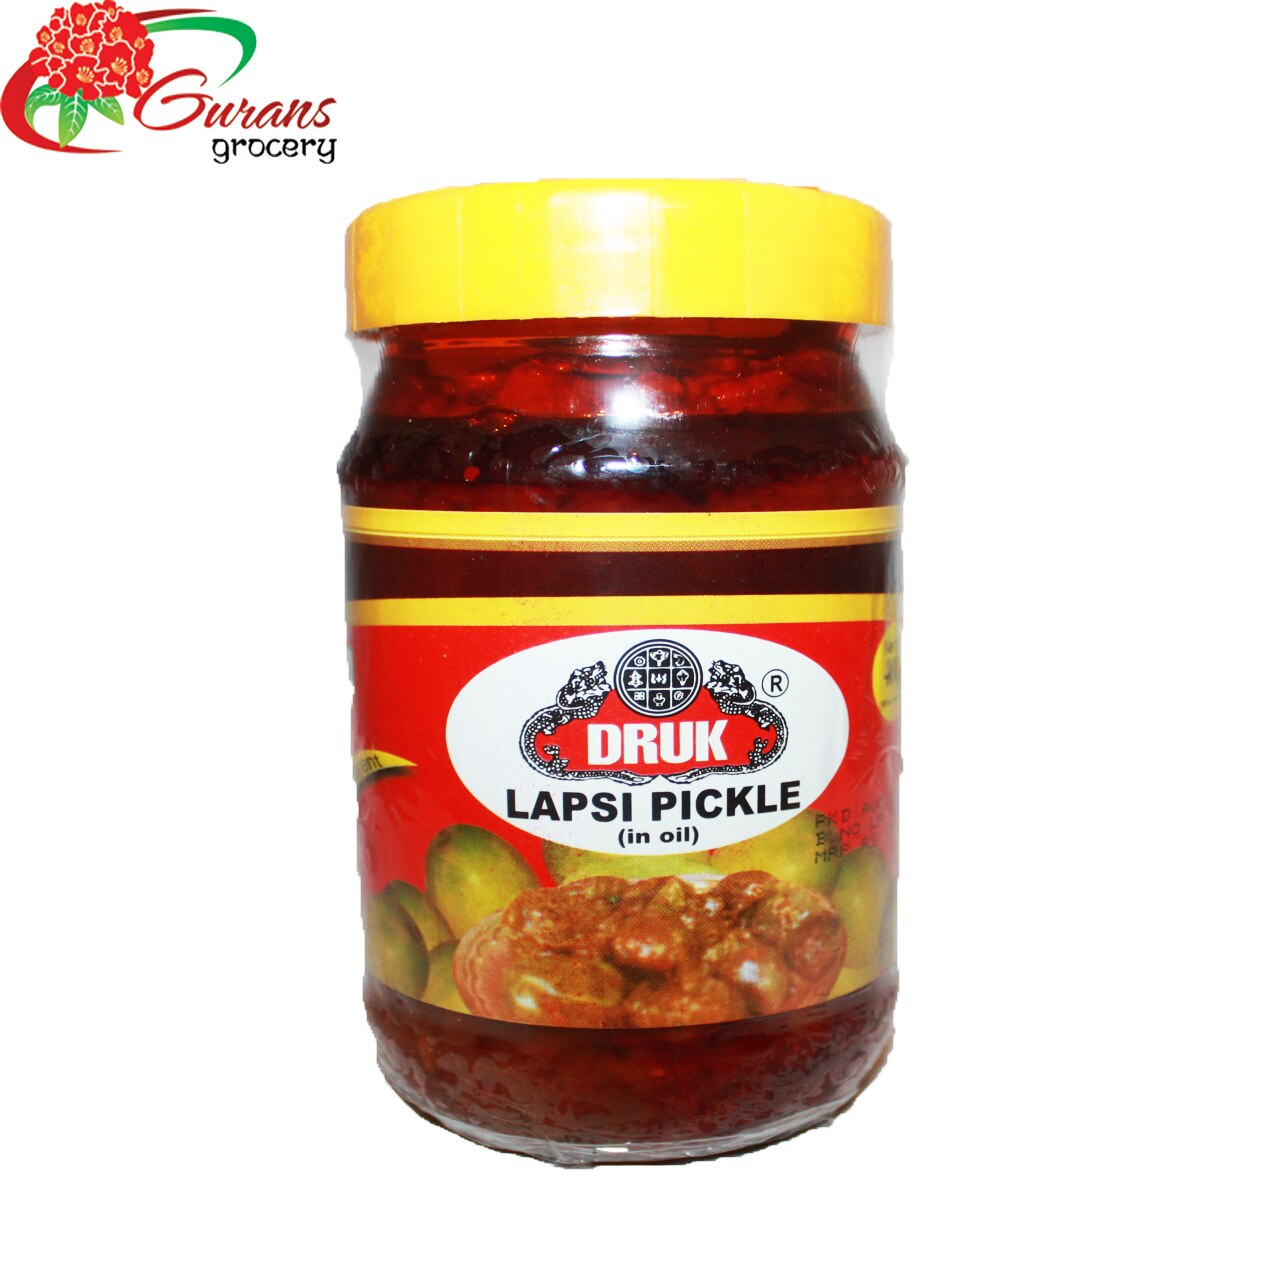 Druk Lapsi pickle 400gm